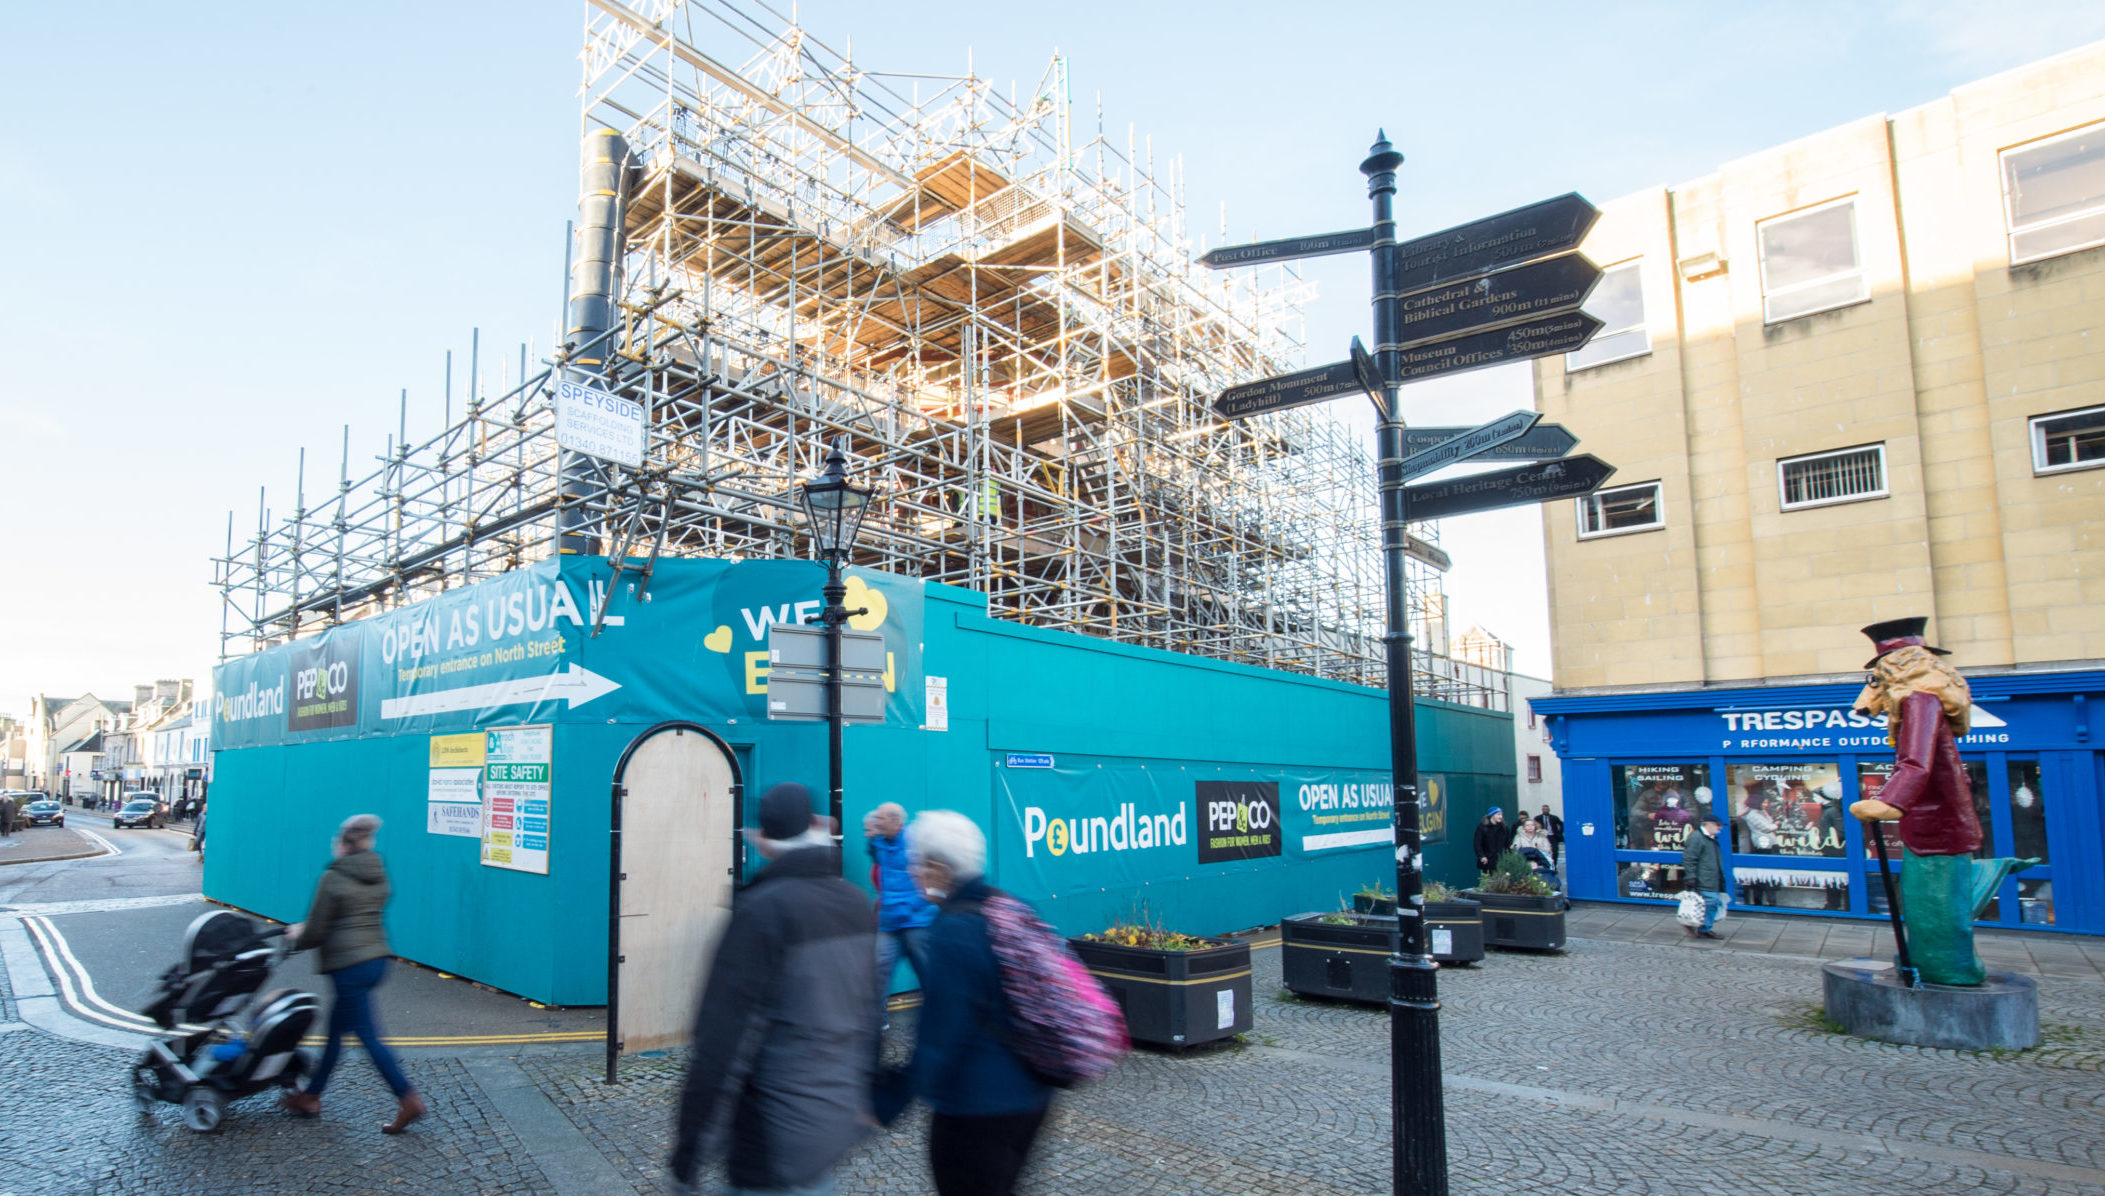 Poundland in Elgin has been shrouded in scaffolding since May 2018.